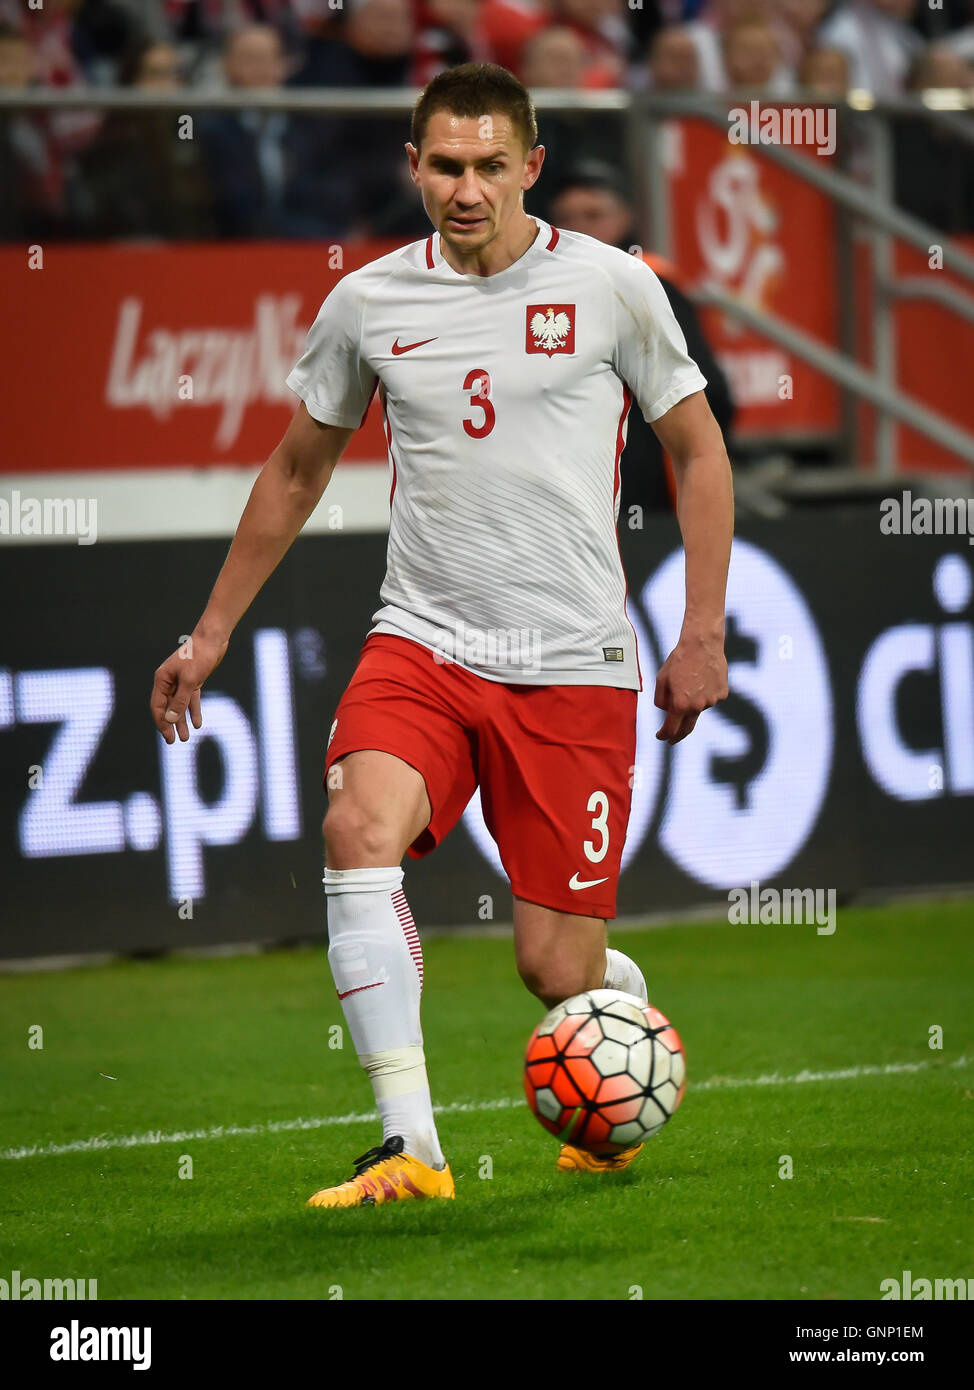 WROCLAW, POLAND - MARCH 26, 2016: Artur Jedrzejczyk in action during International Football friendly match Poland - Stock Image